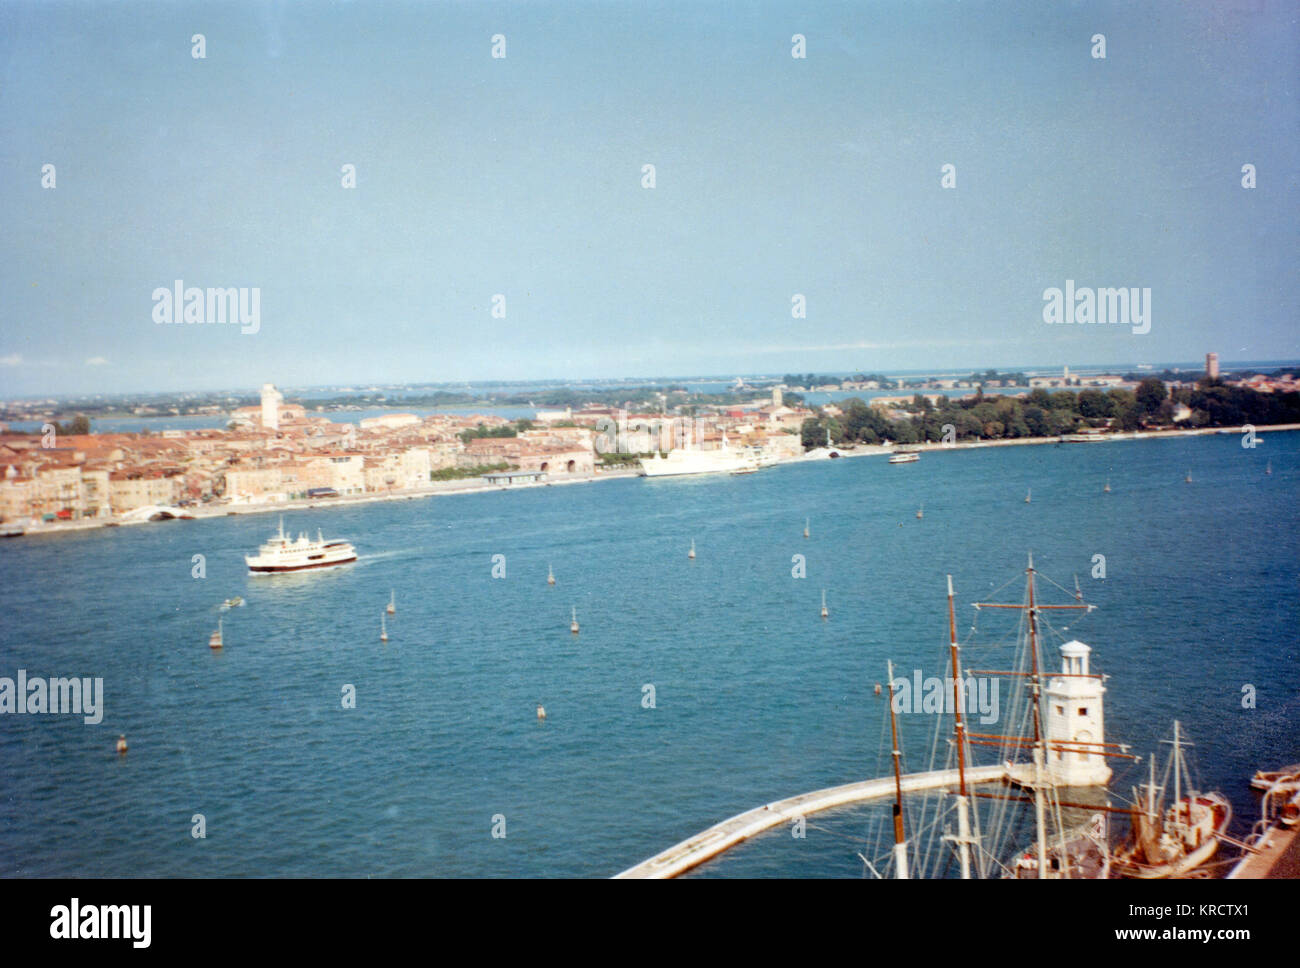 General view from the top of the campanile in Venice, Italy. Date: 1968 - Stock Image